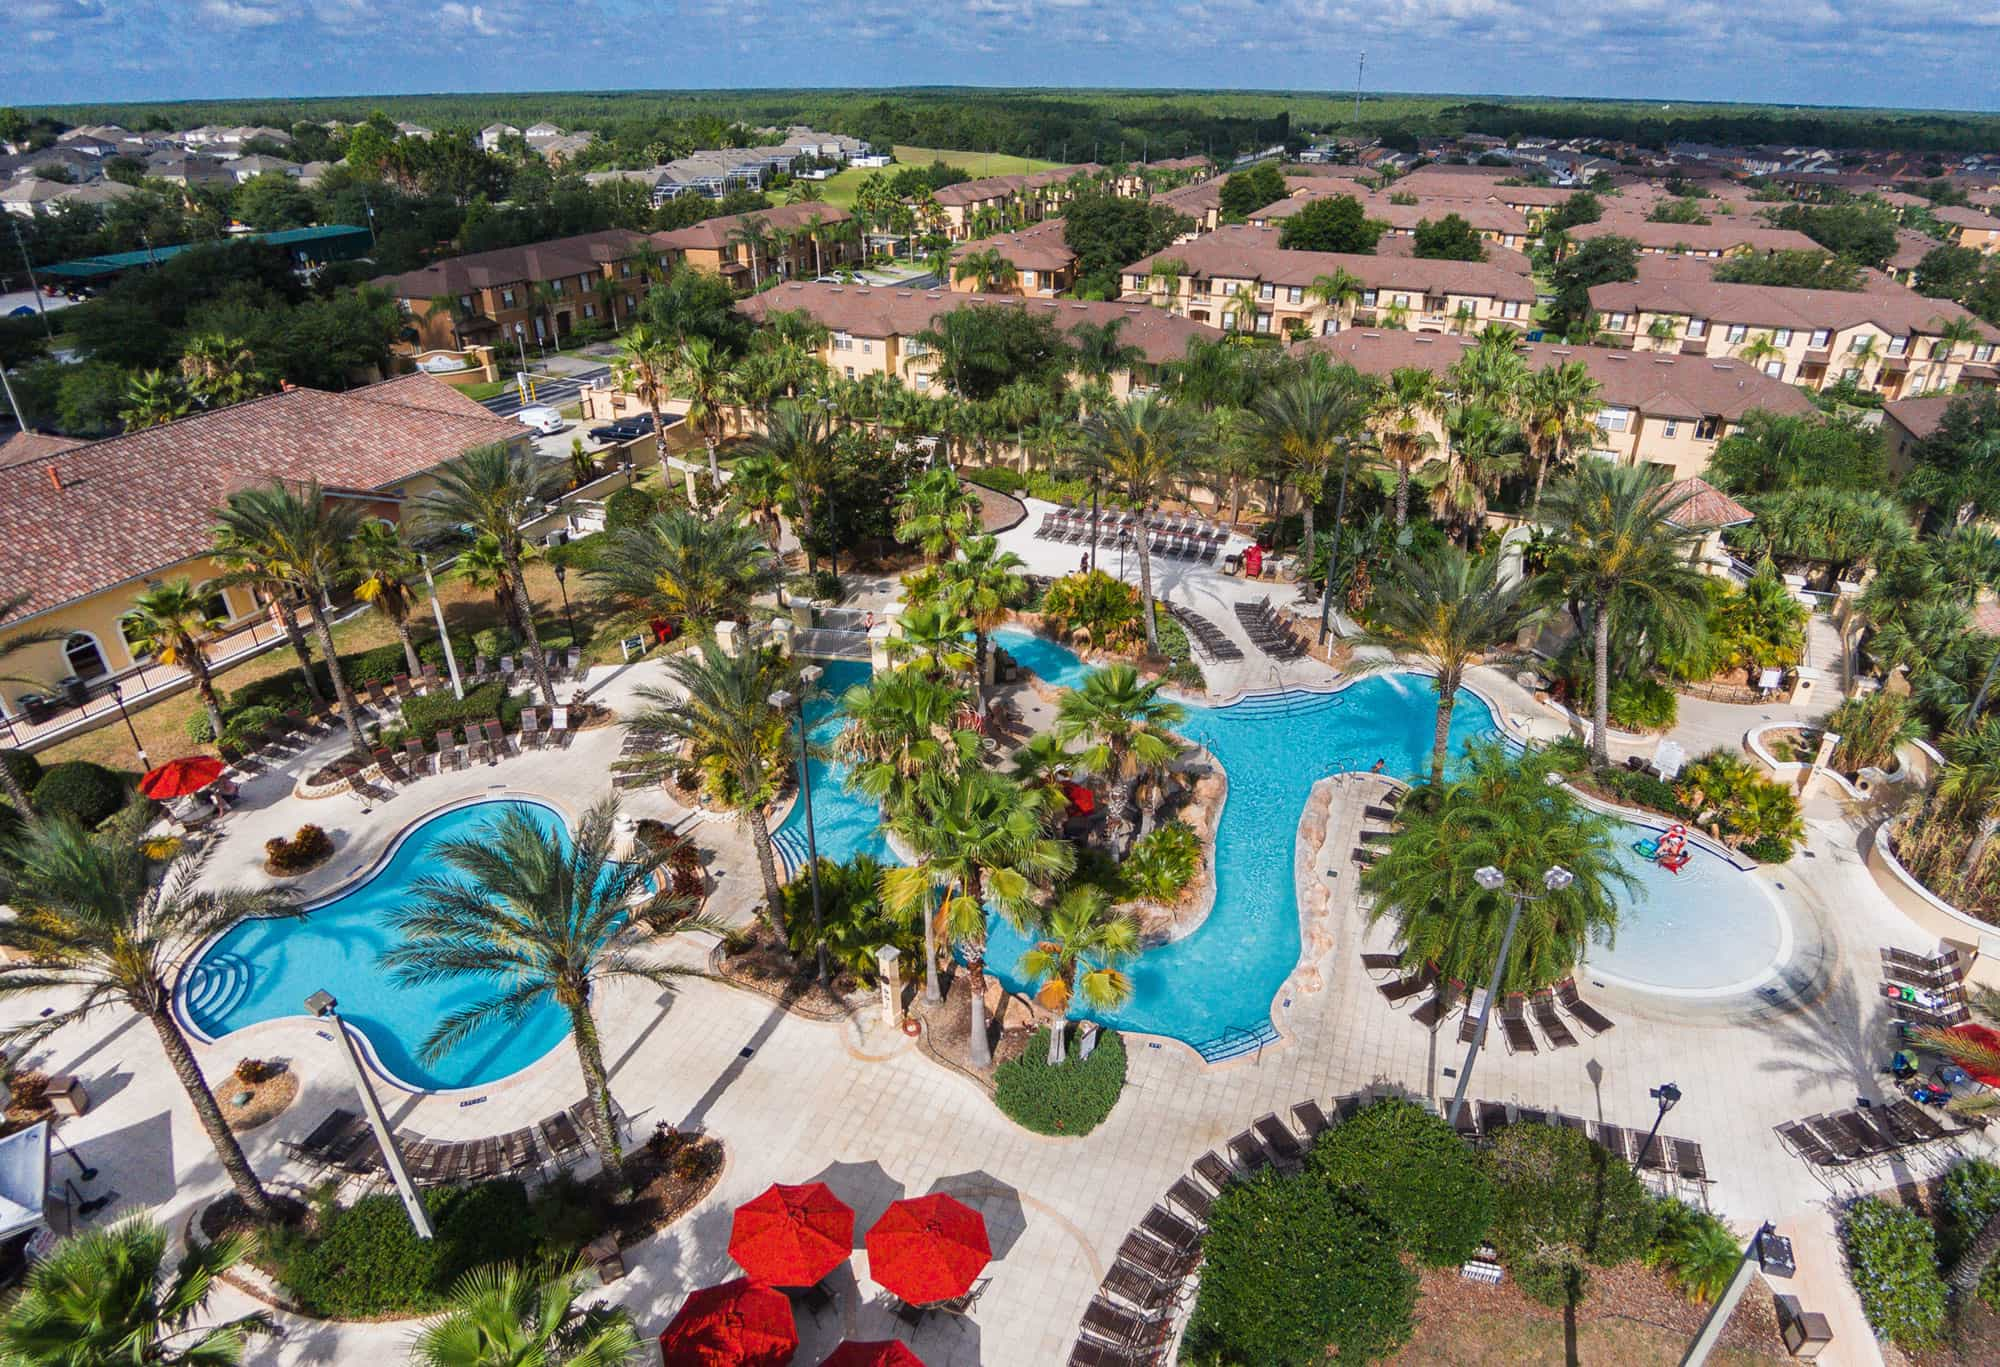 Water park area and townhouses at Regal Palms Resort in Davenport, FL